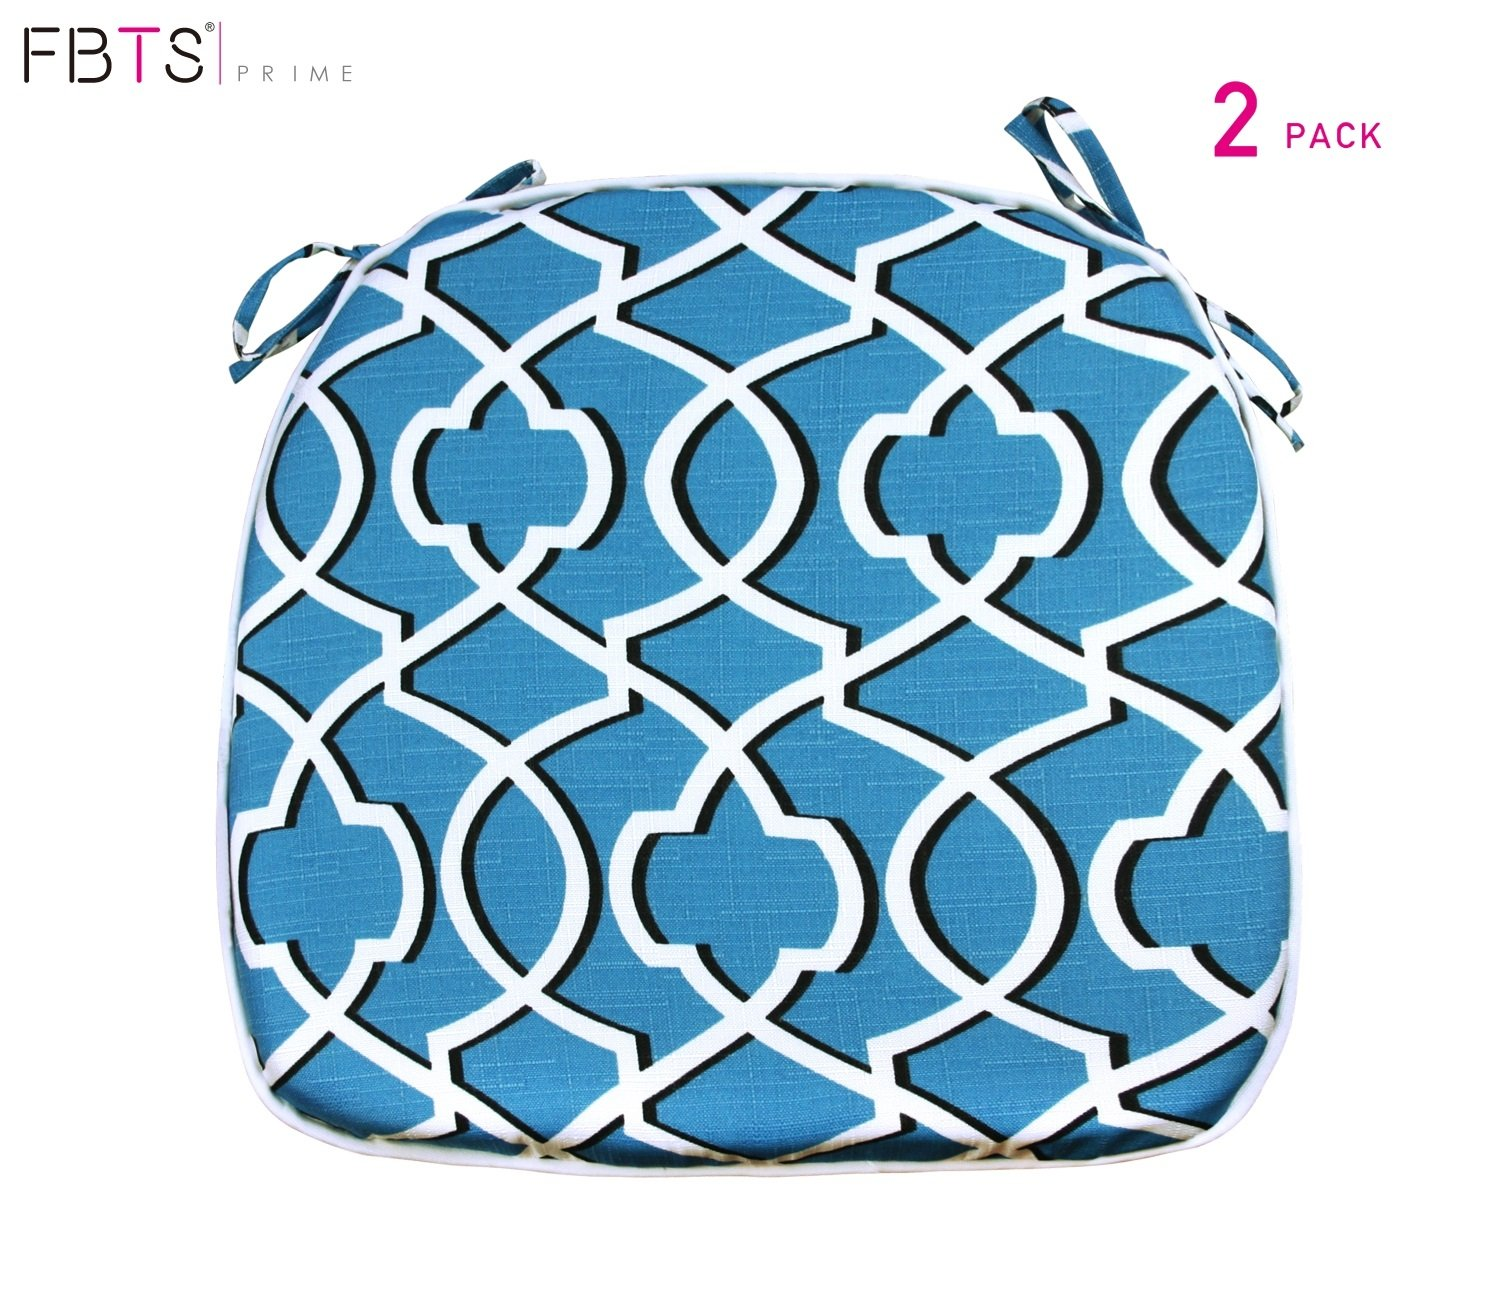 FBTS Prime Outdoor Chair Cushion (Set of 2) 16x17 inches Patio Seat Cushions Blue Square Chair Pads for Outdoor Patio Furniture Garden Home Office